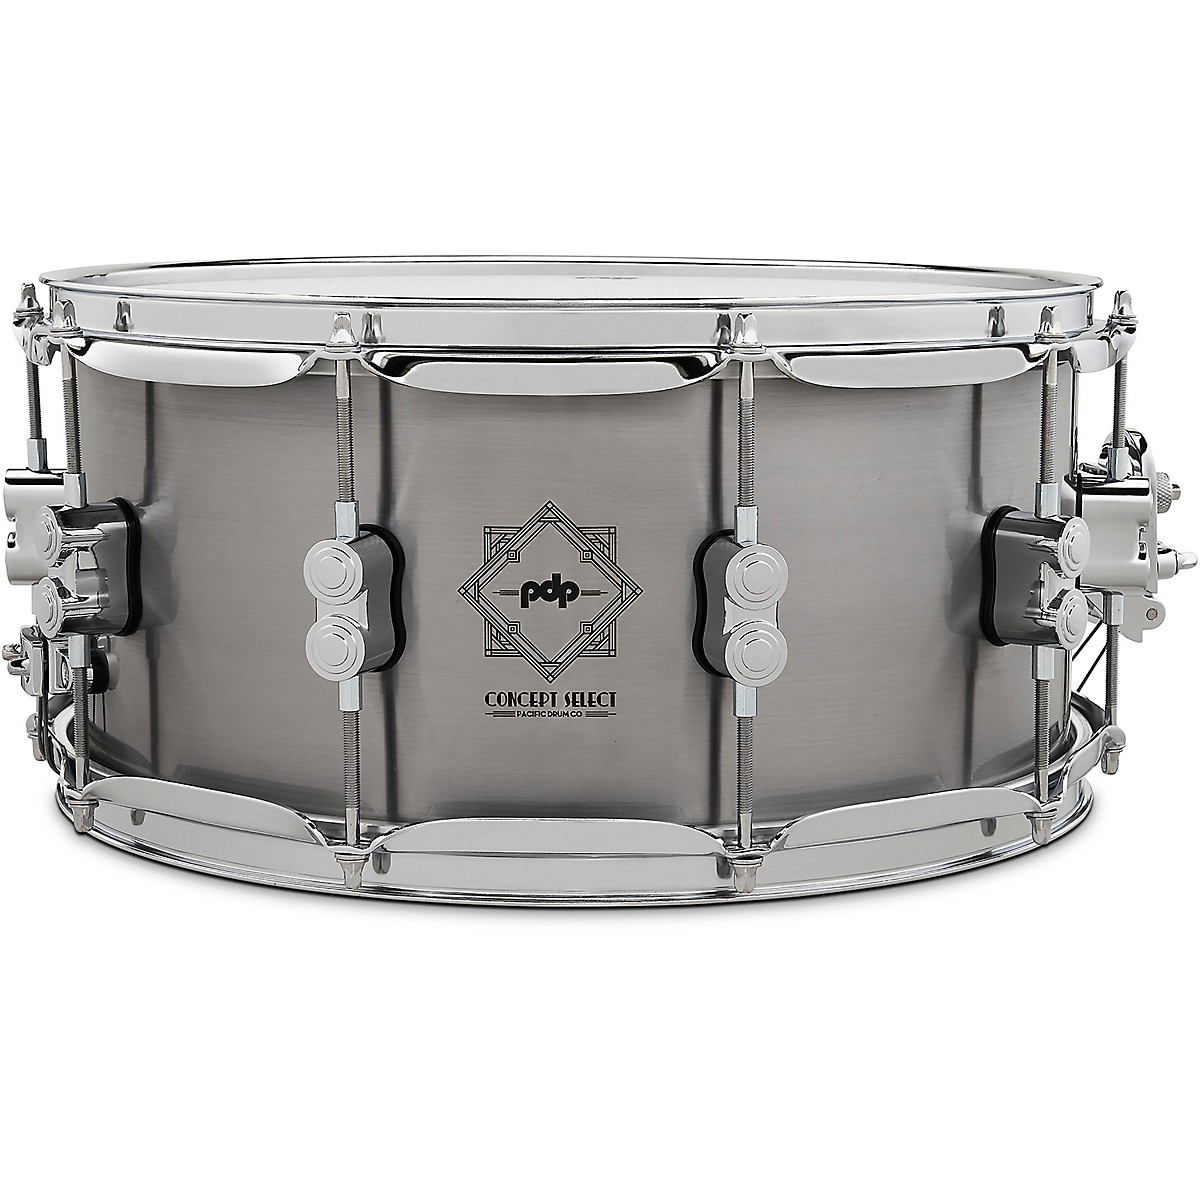 PDP by DW Concept Select Steel Snare Drum